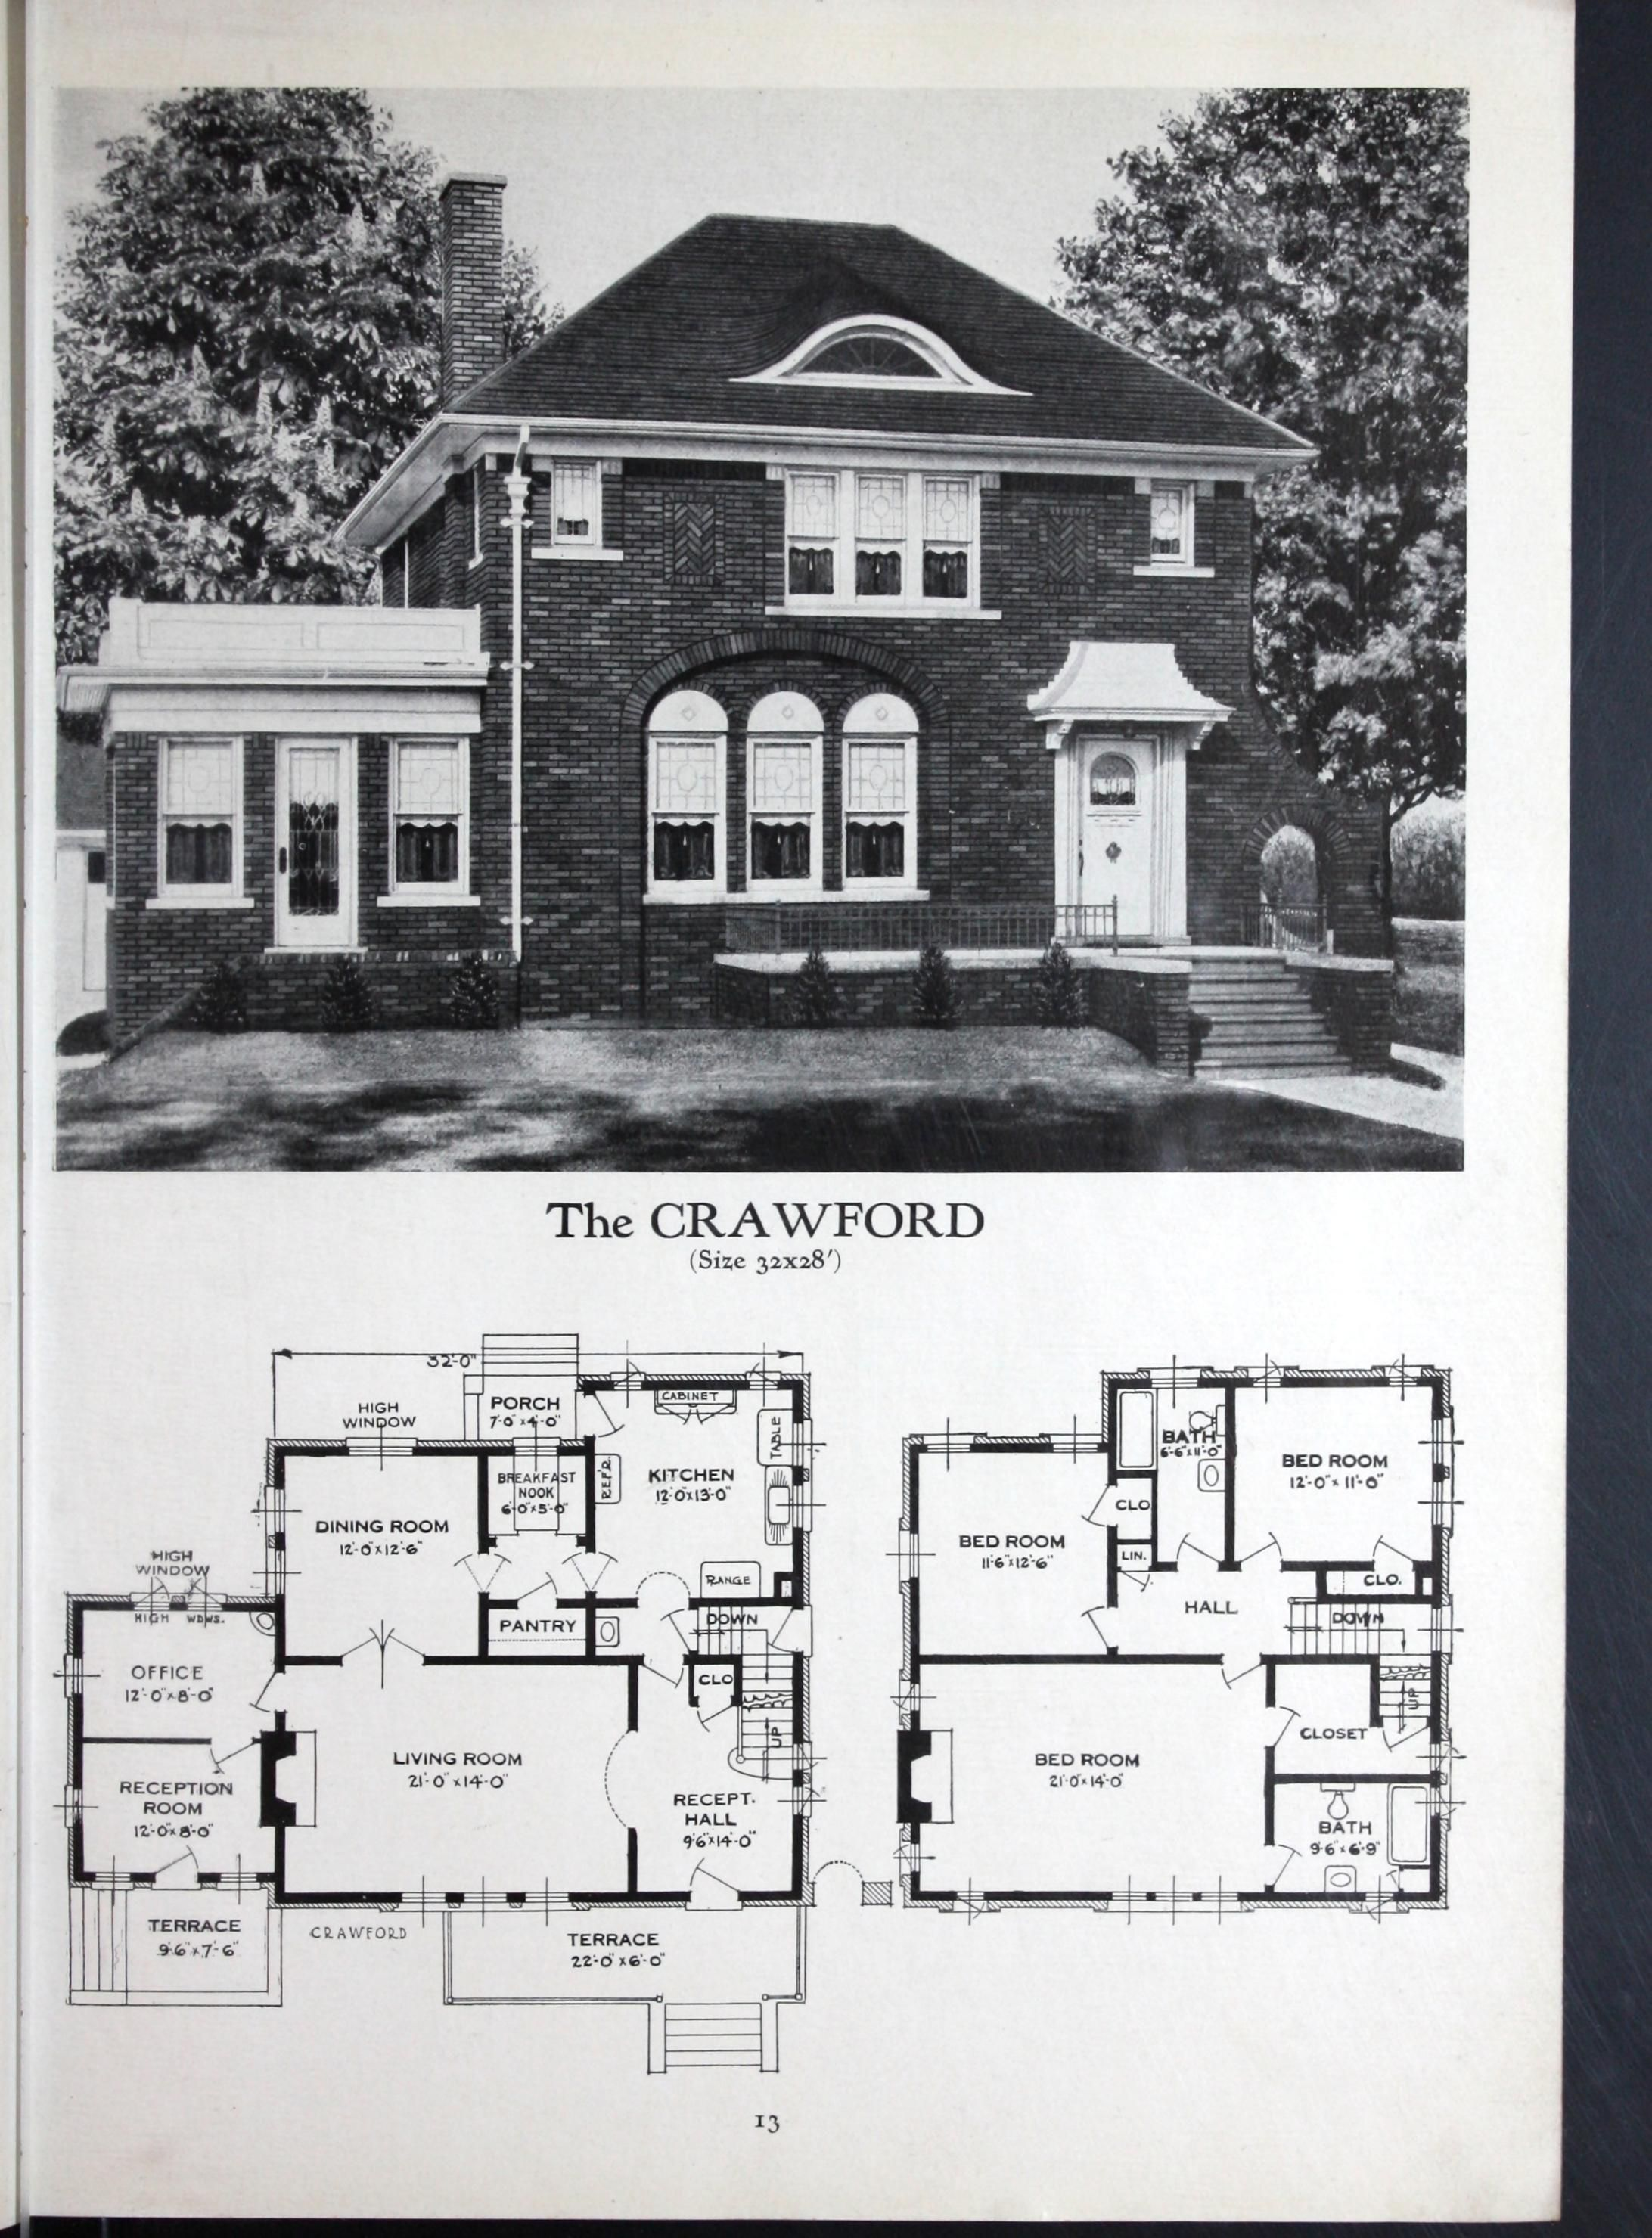 Pin By Richard Poitras On House Plans Vintage House Plans House Plans Retro Home Decor